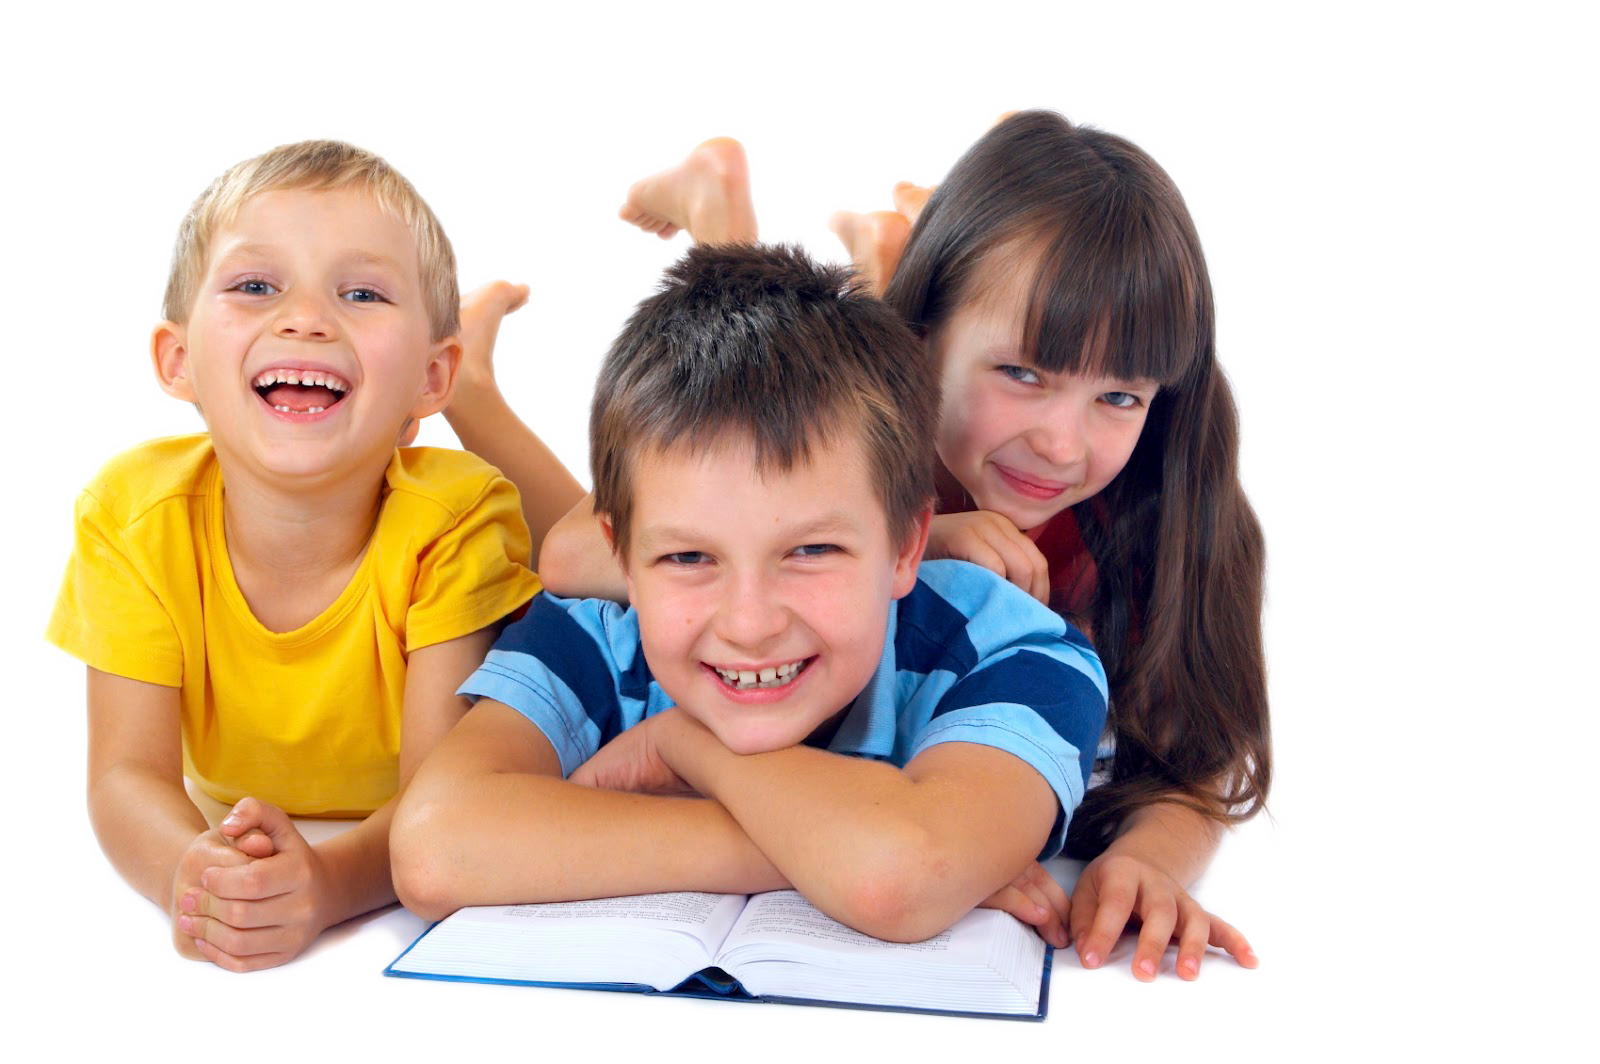 Children, kids PNG images free download, kid PNG, child PNG.